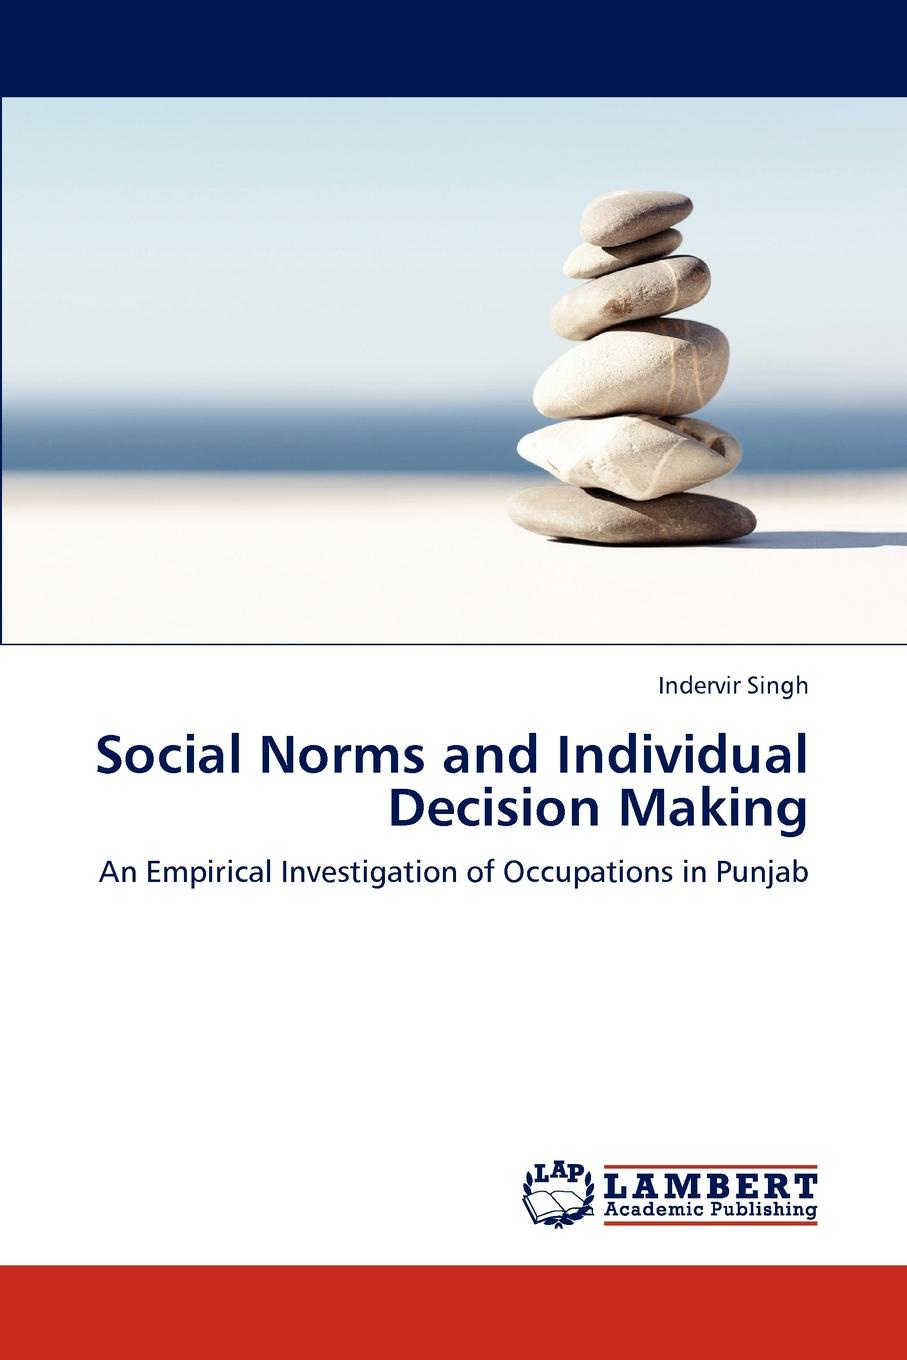 Indervir Singh Social Norms and Individual Decision Making